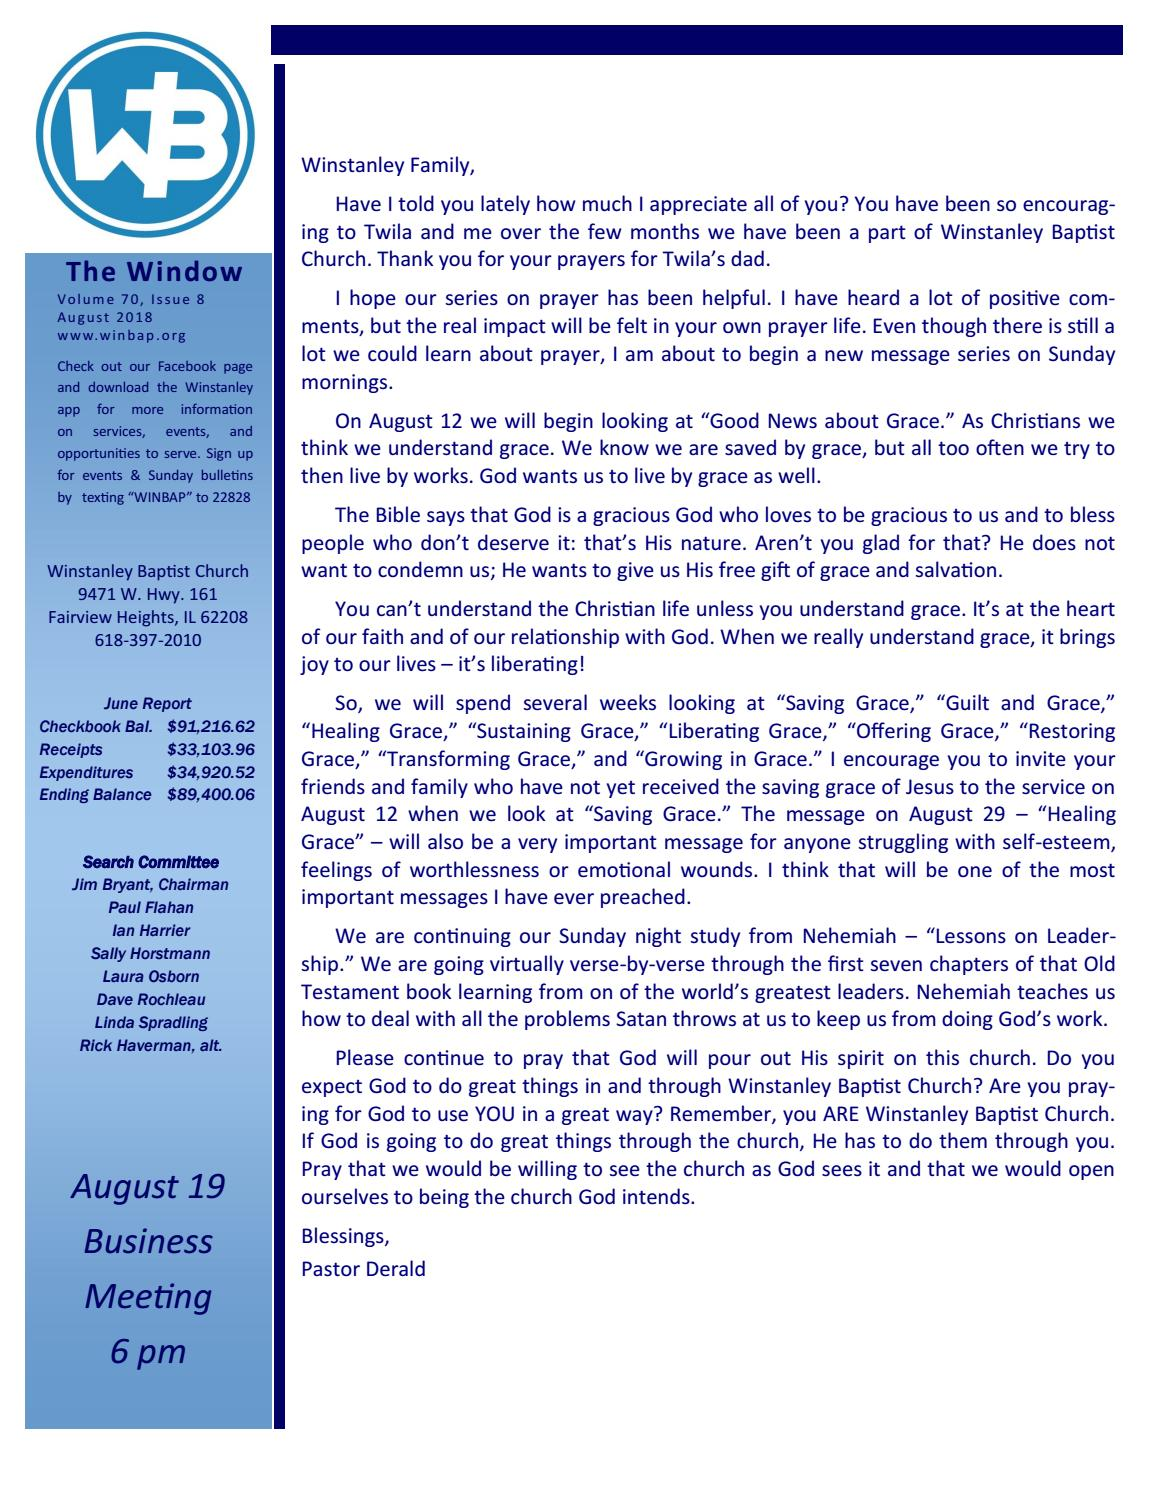 Last Sunday In August Felt More Like >> Volume 70 Issue 8 August 2018 By Winstanley Baptist Church Issuu